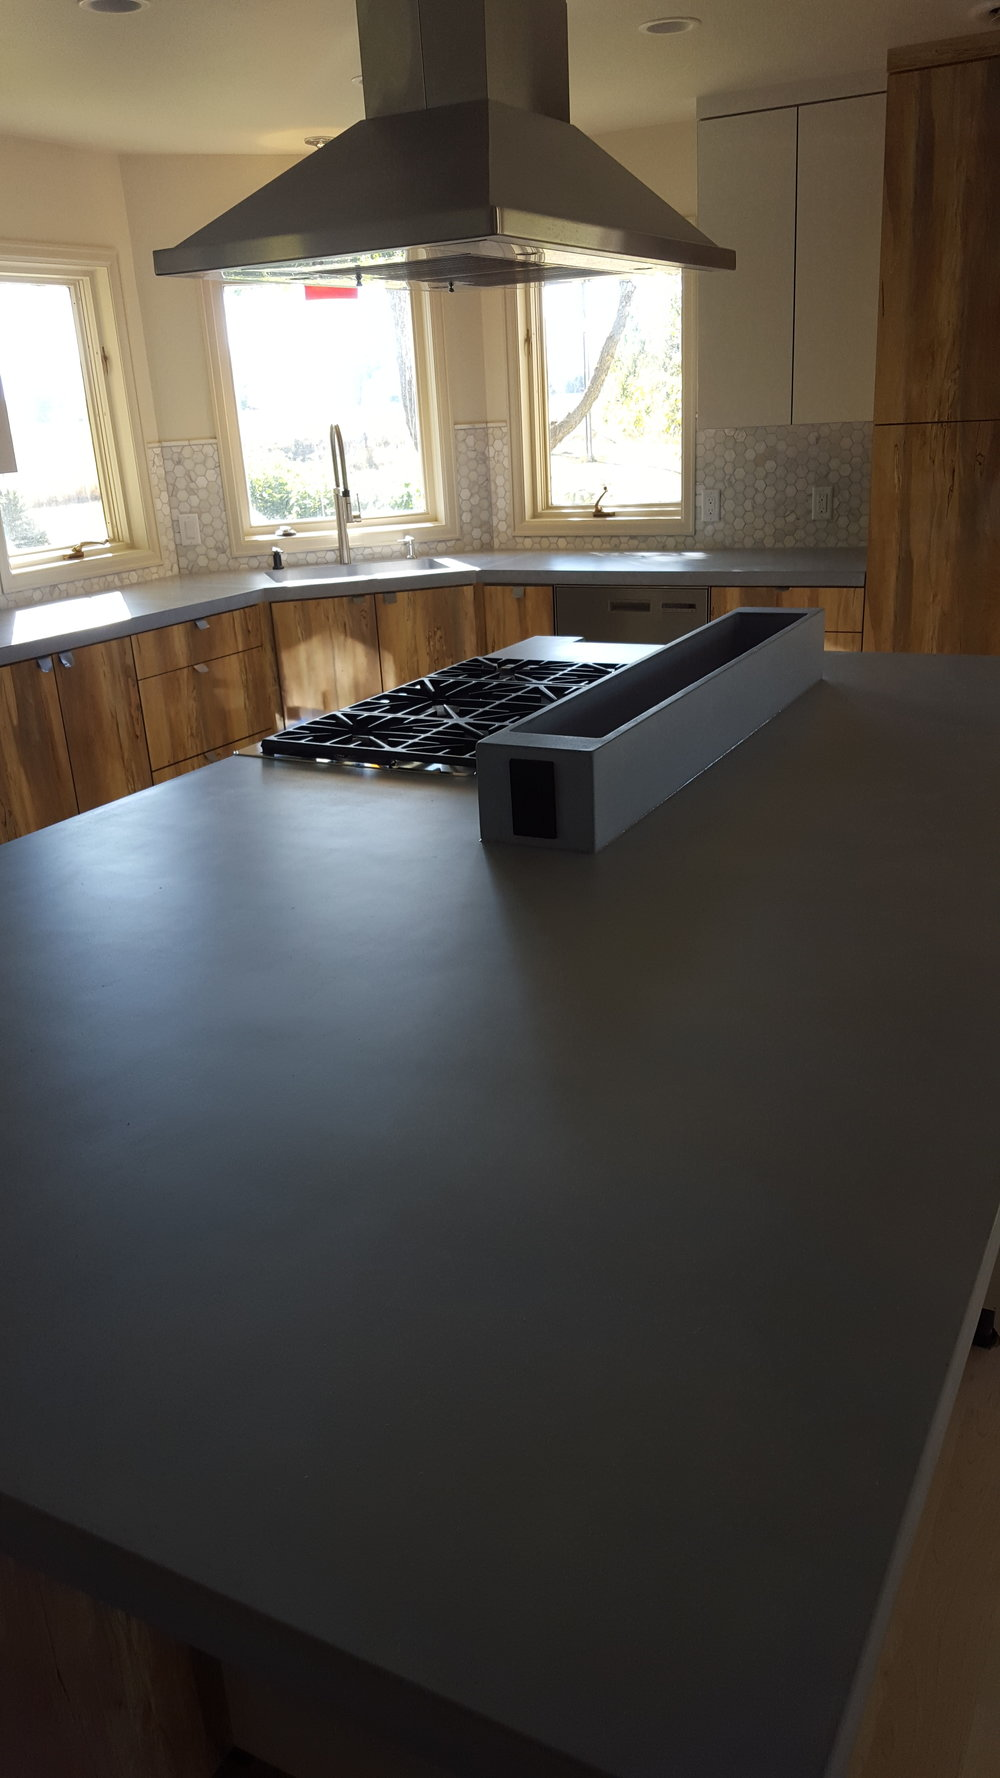 greyrockconcrete_customcountertops_grey_kitchen_concrete_countertops_customconcretecolorado_customisland_island_concreteisland_greyrock.jpg